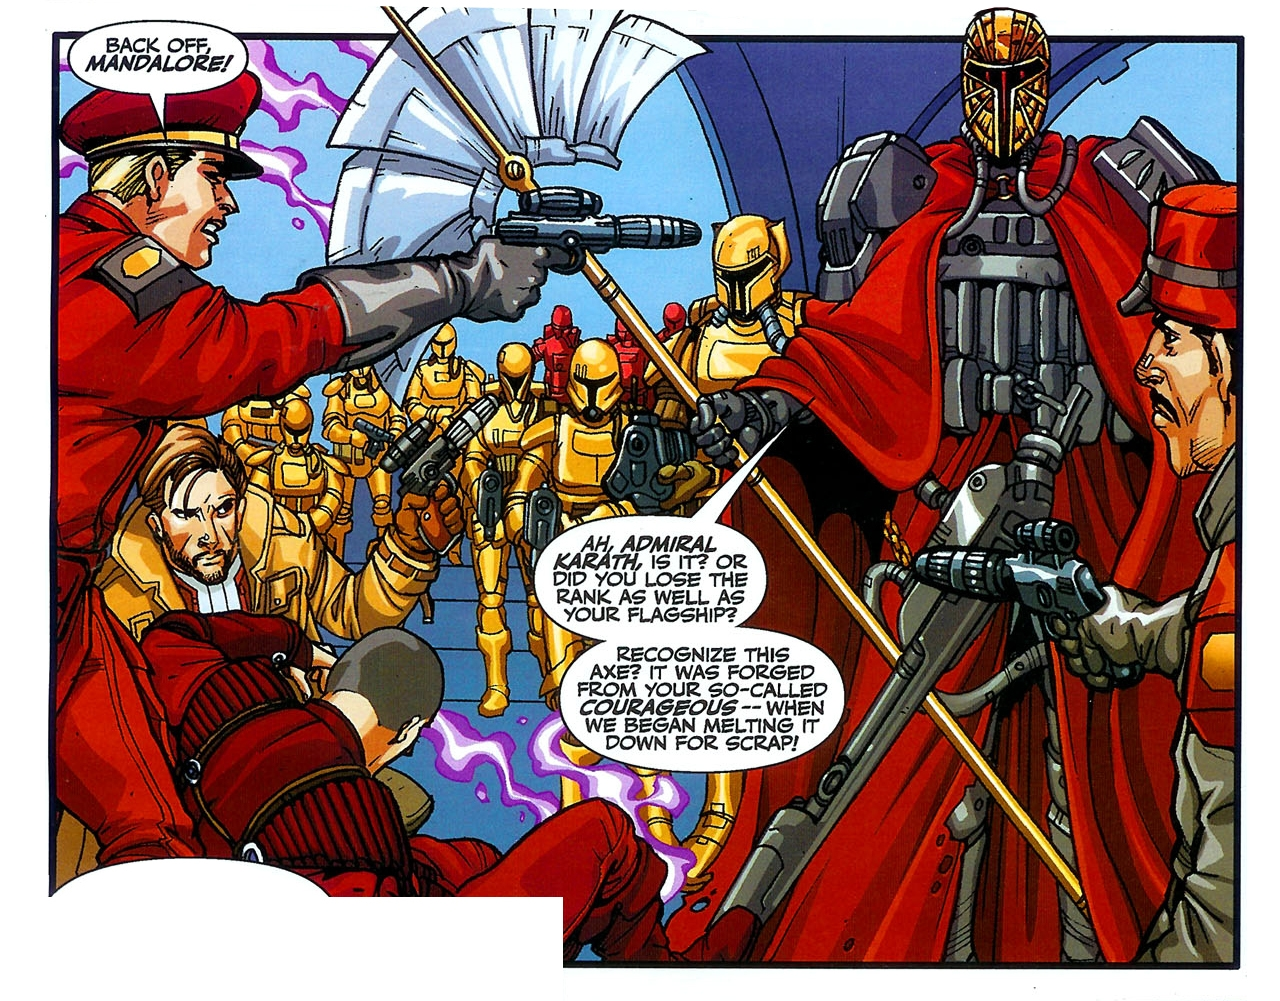 carth_karath_mandalore_comic book scene